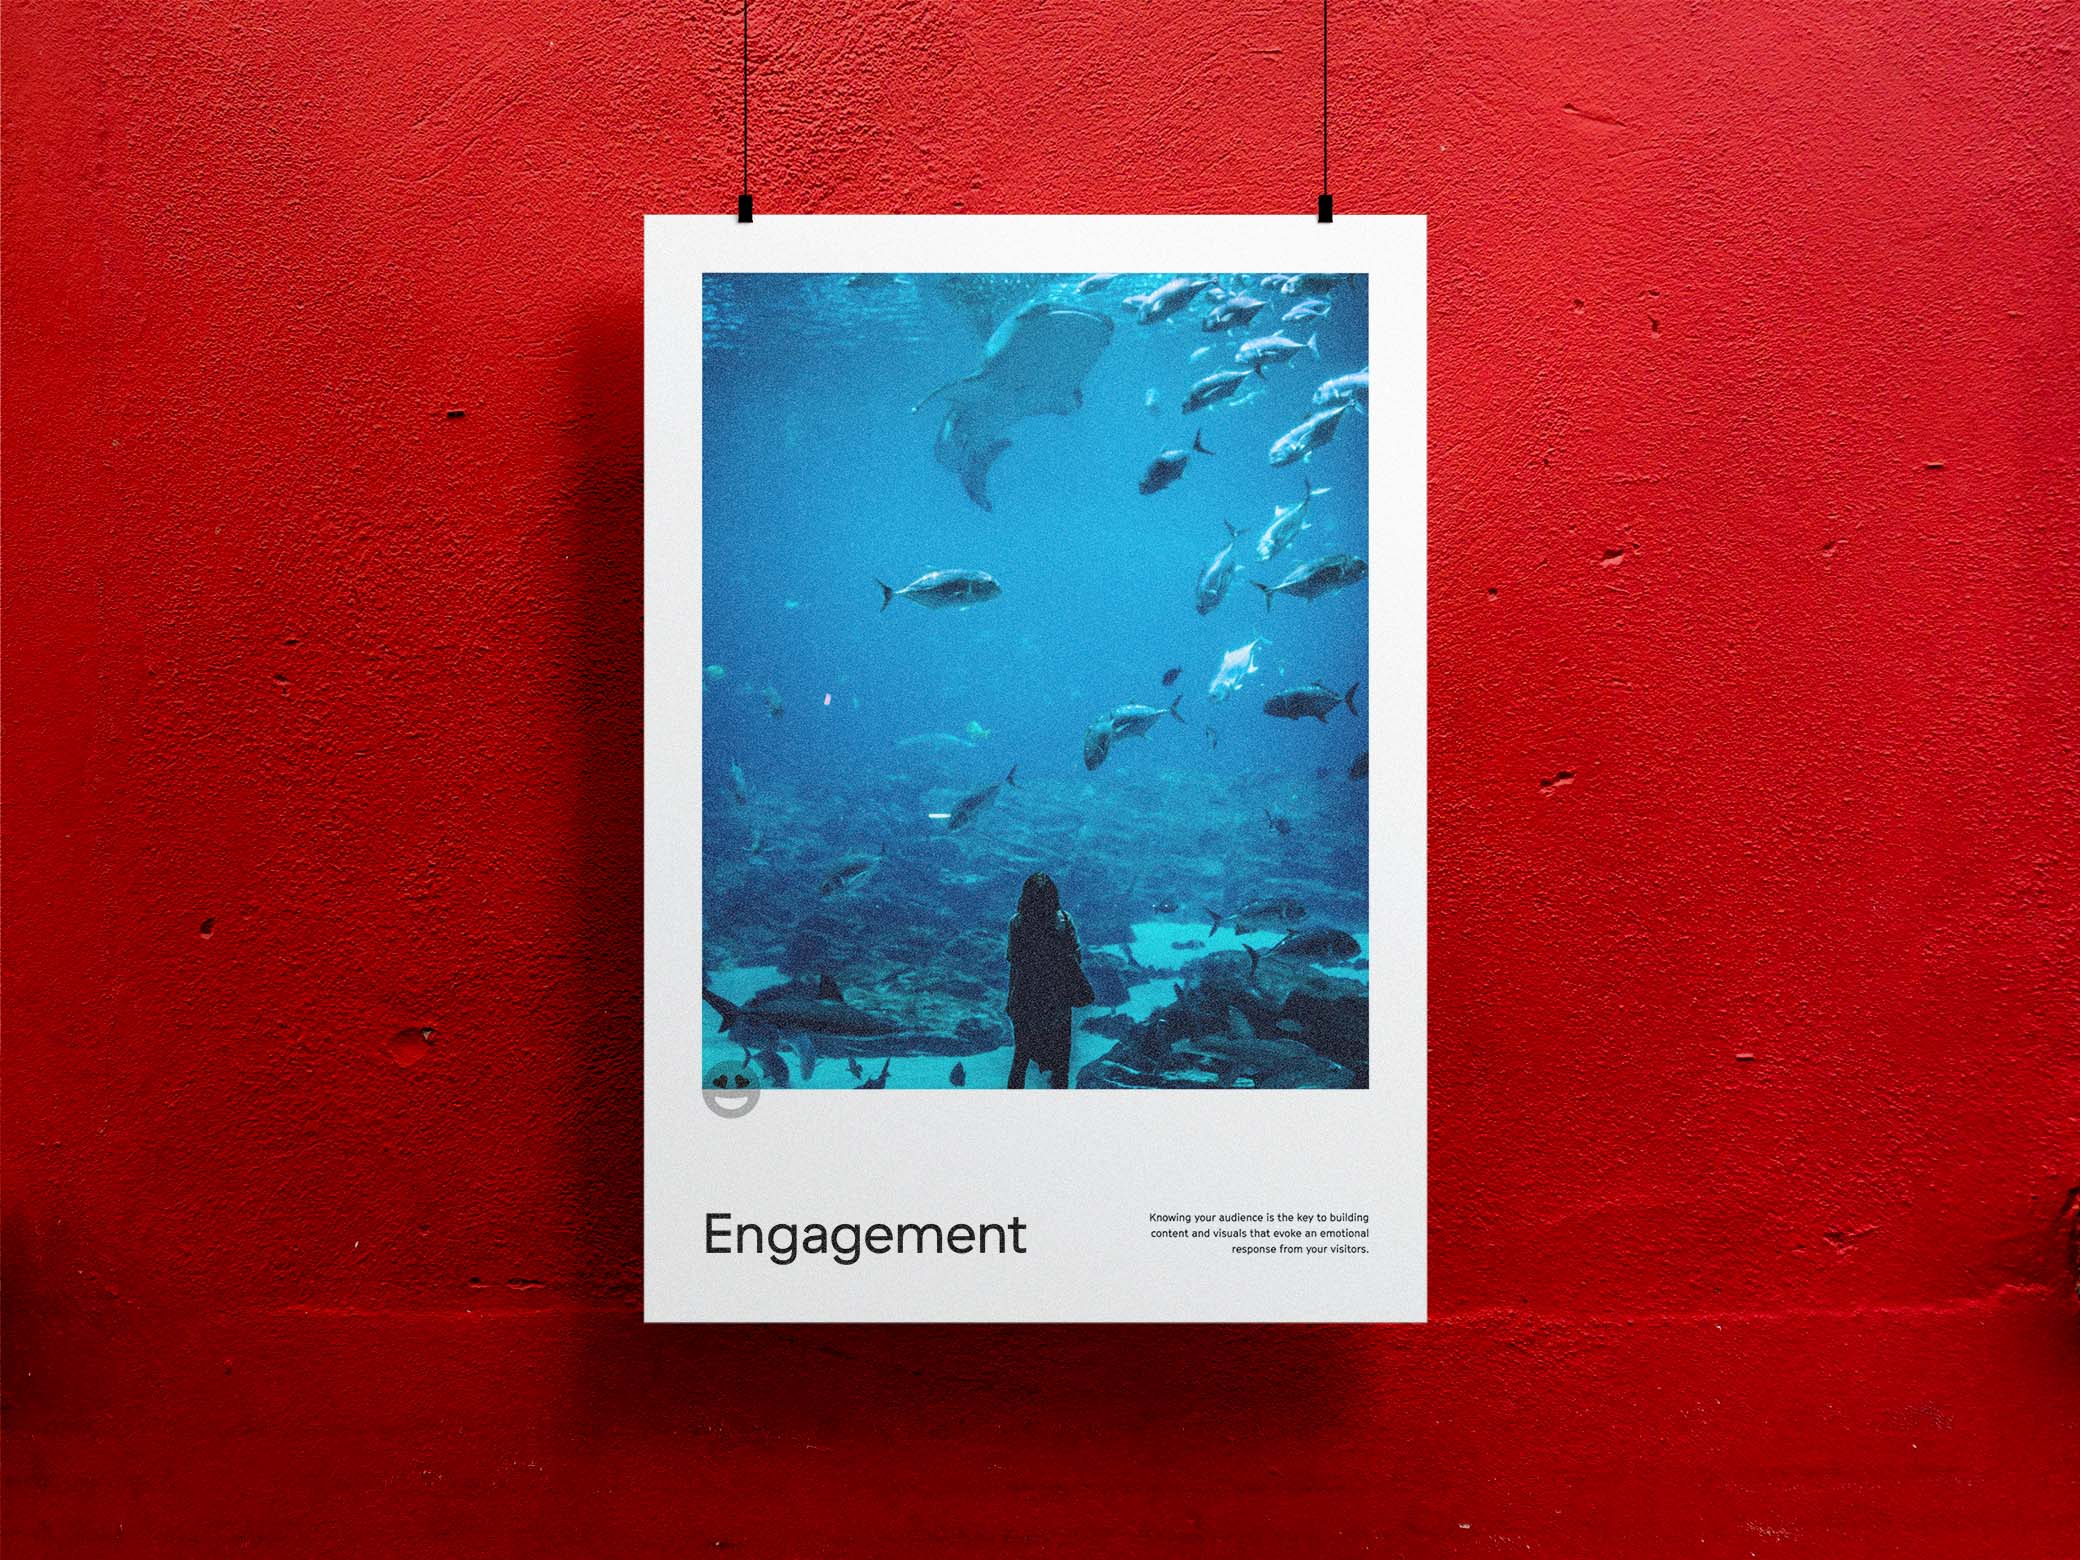 Engagement poster with an image of a young girl staring up at an aquarium tank with a shark and fish